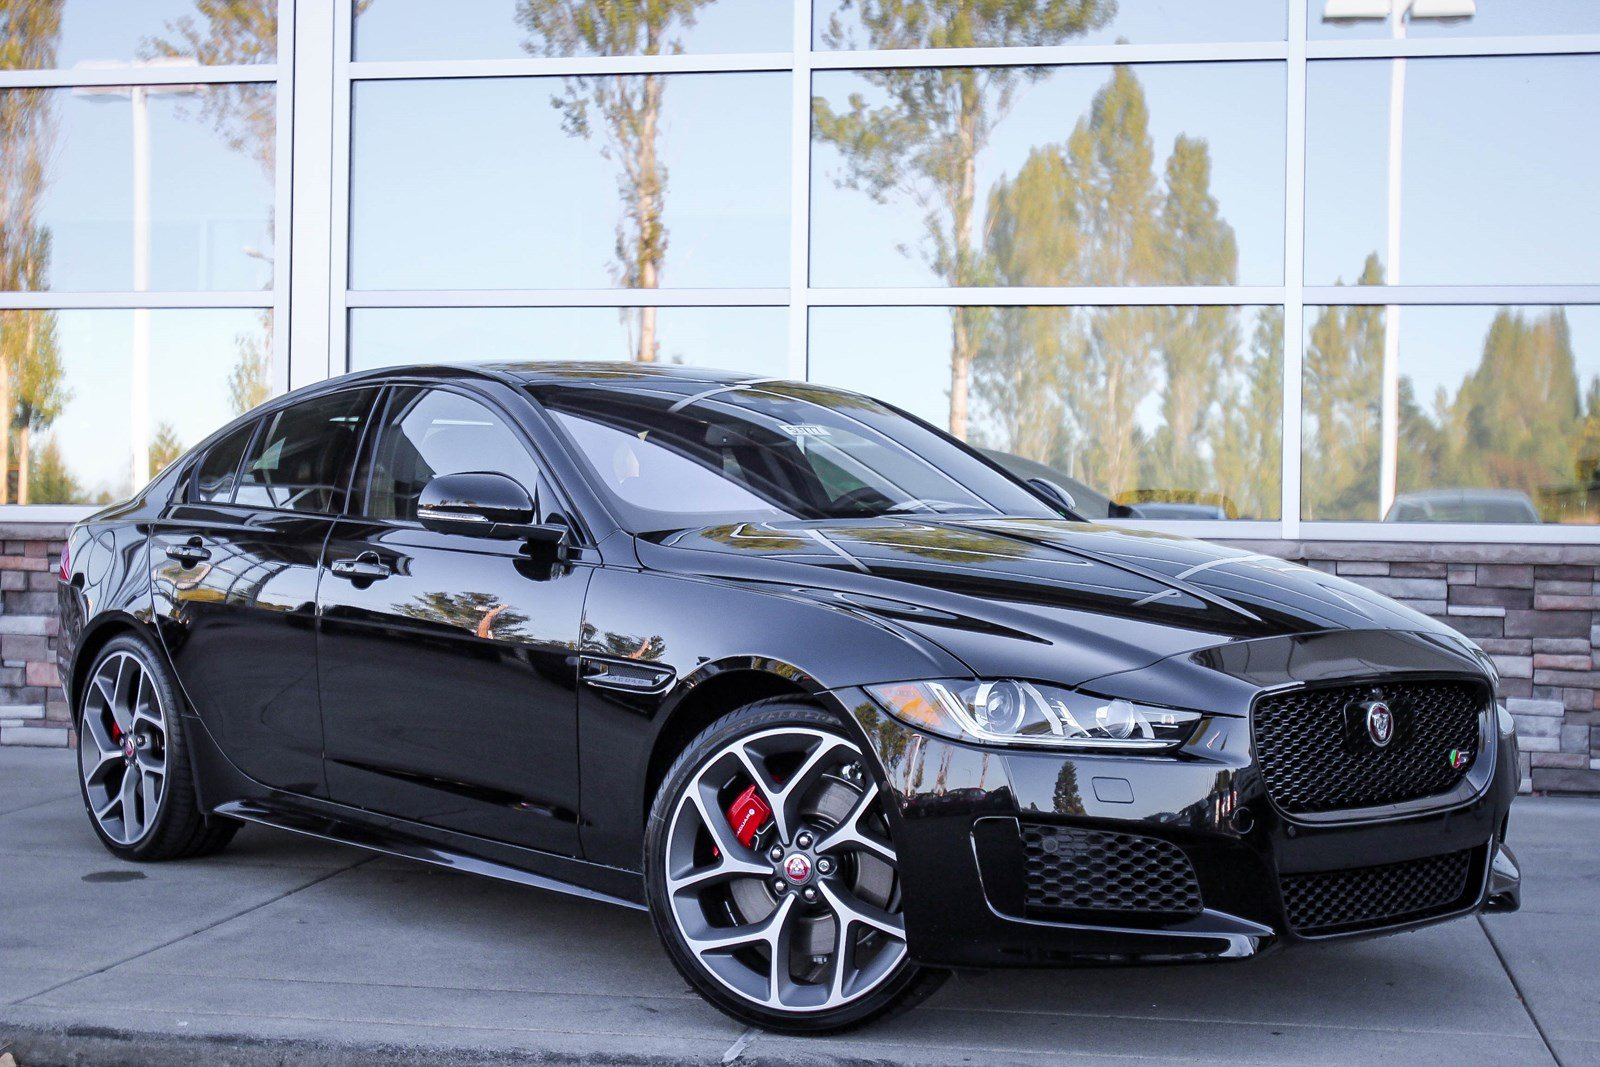 New 2018 Jaguar Xe S 4dr Car In Bellevue 59777 Jaguar